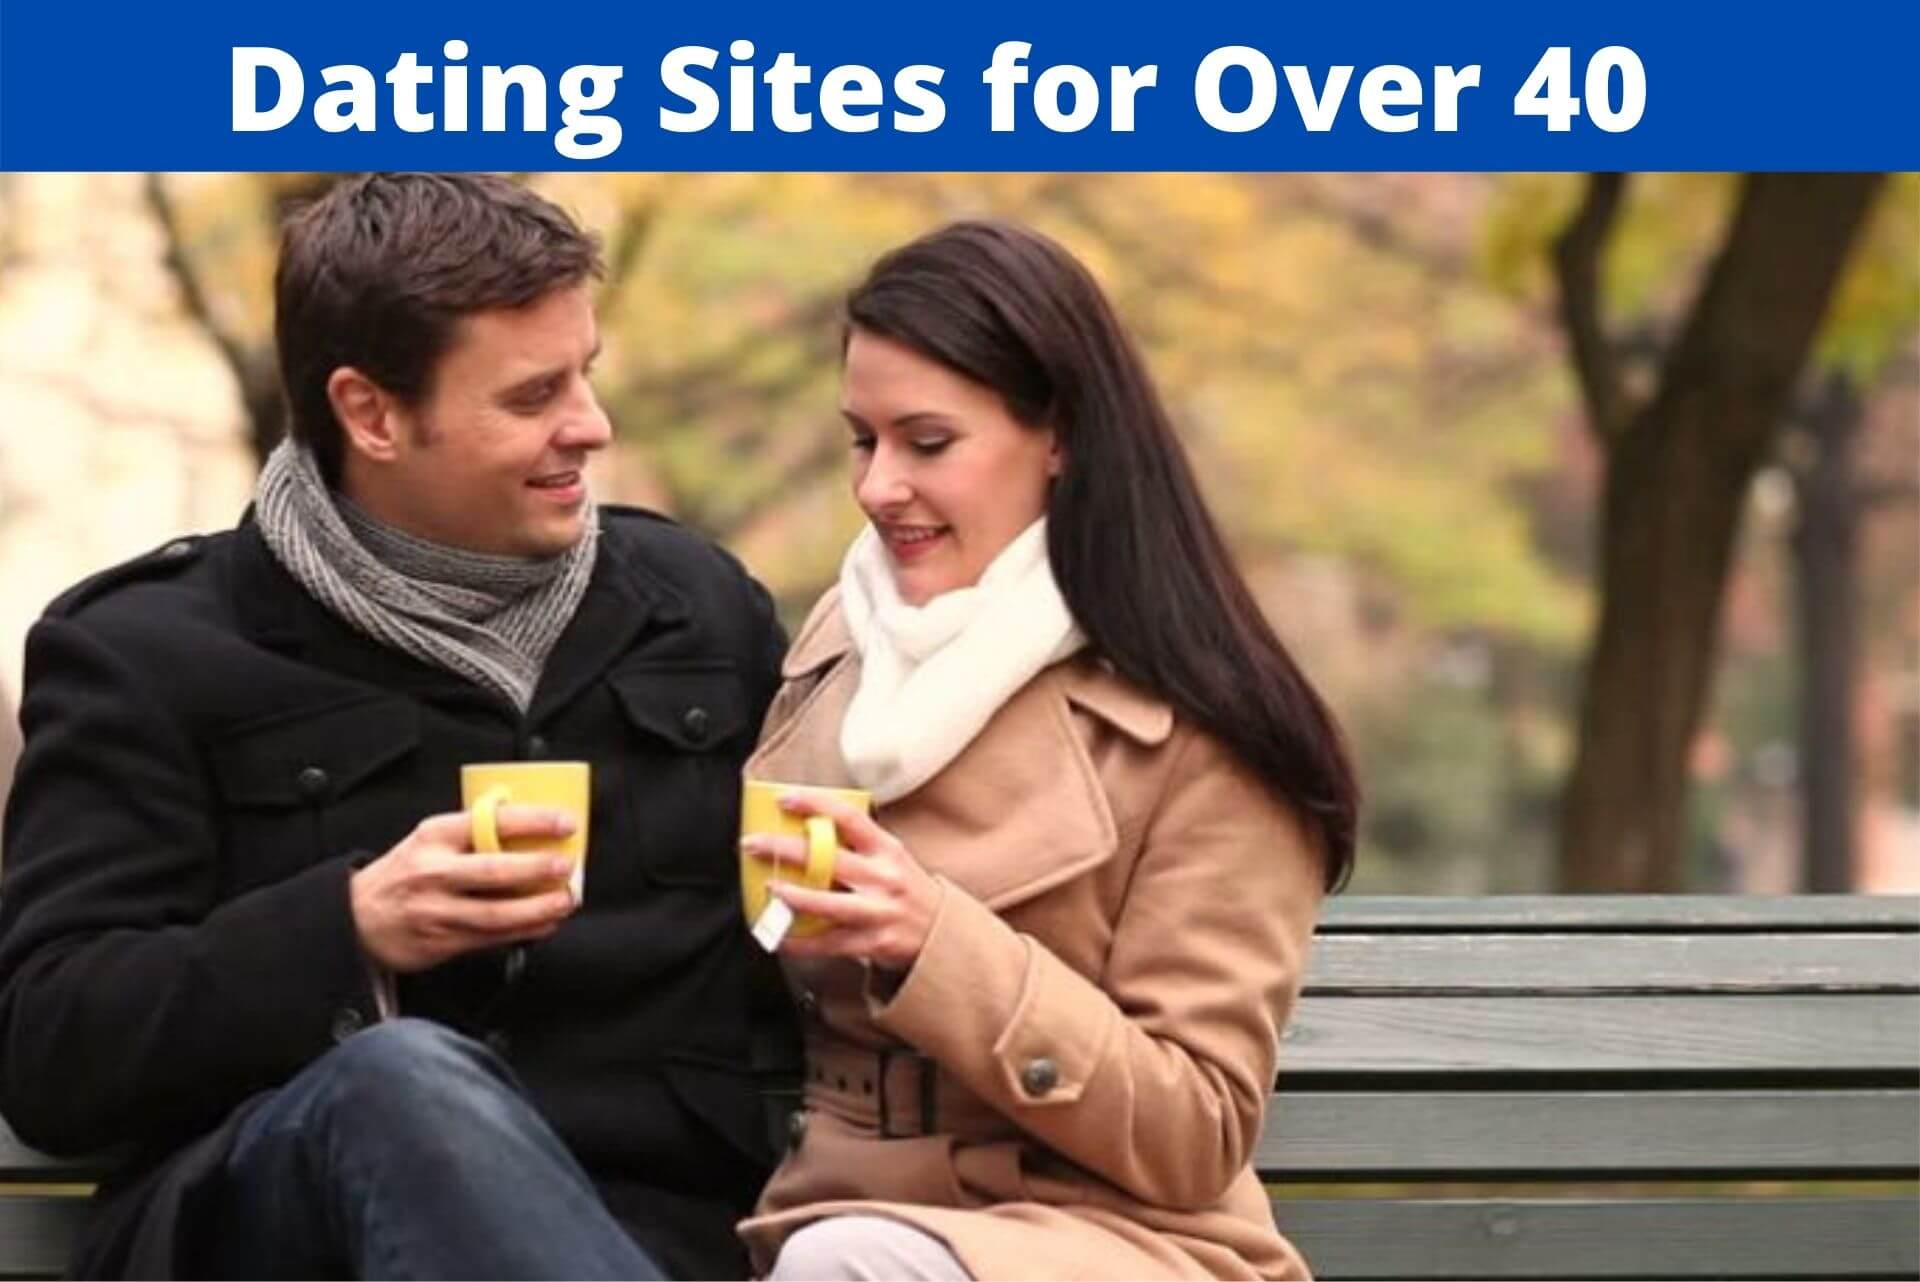 Top 7 Dating Sites for Over 40